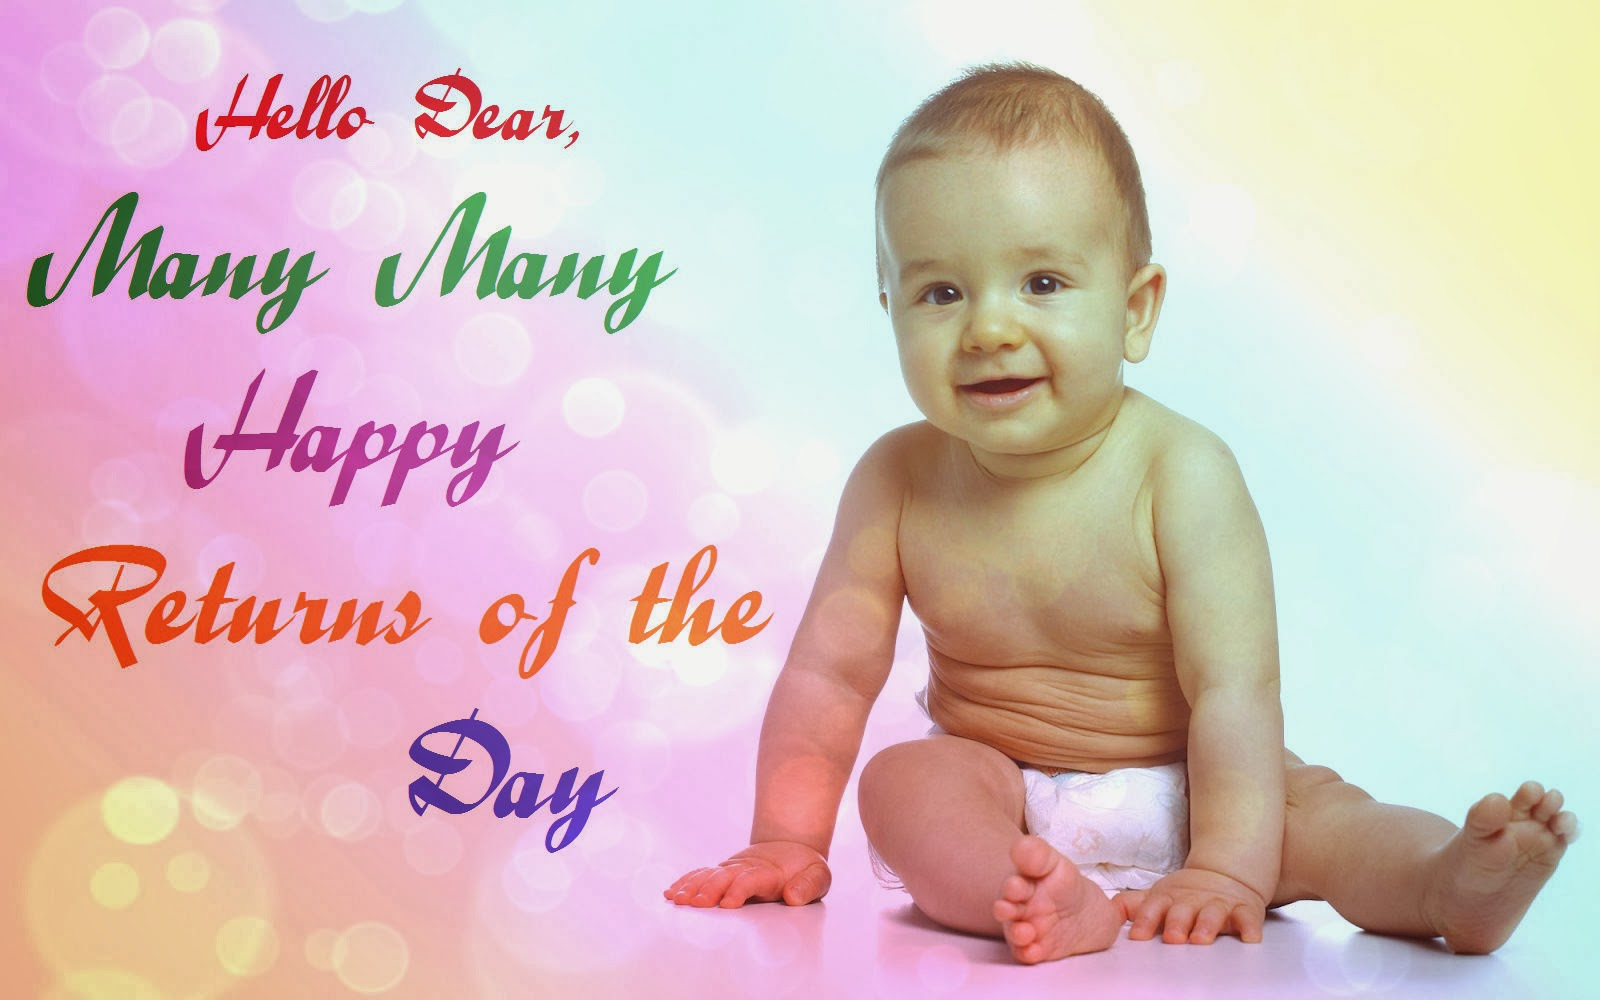 happy birthday cute baby image ; Happy+Birthday+Lovely+Wishes+Images+-+131